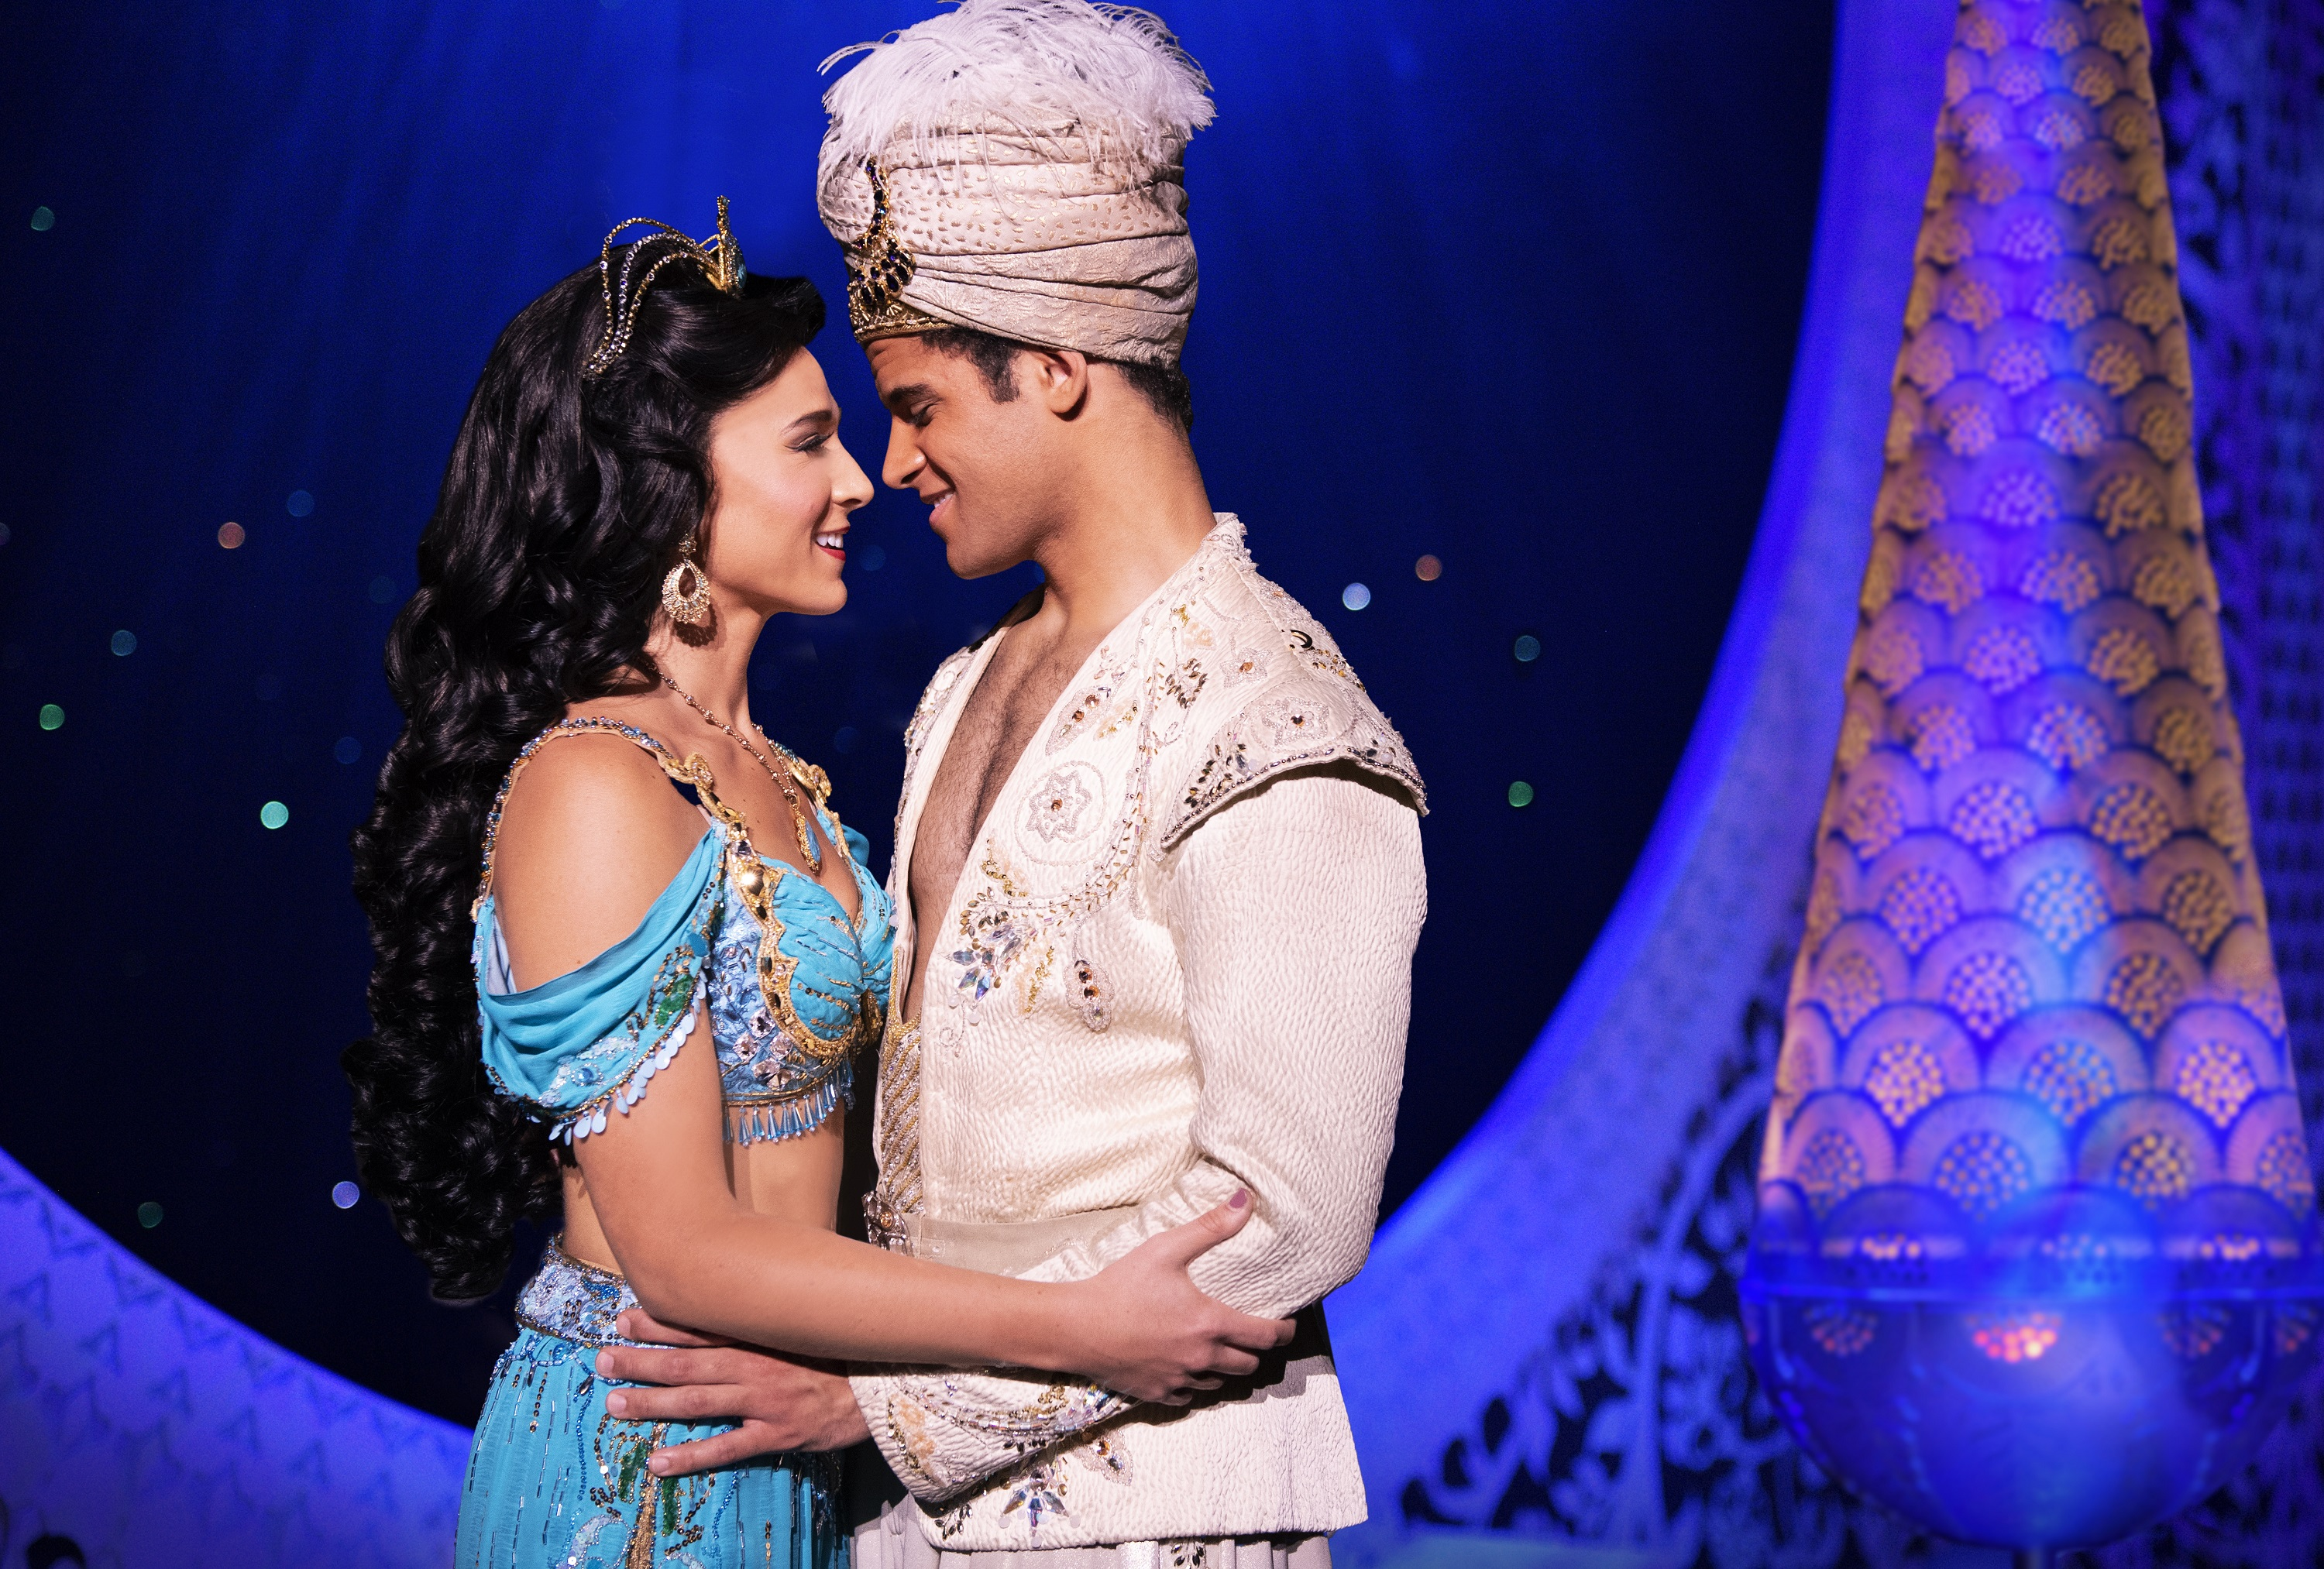 There's only one word for 'Aladdin' -- dazzling